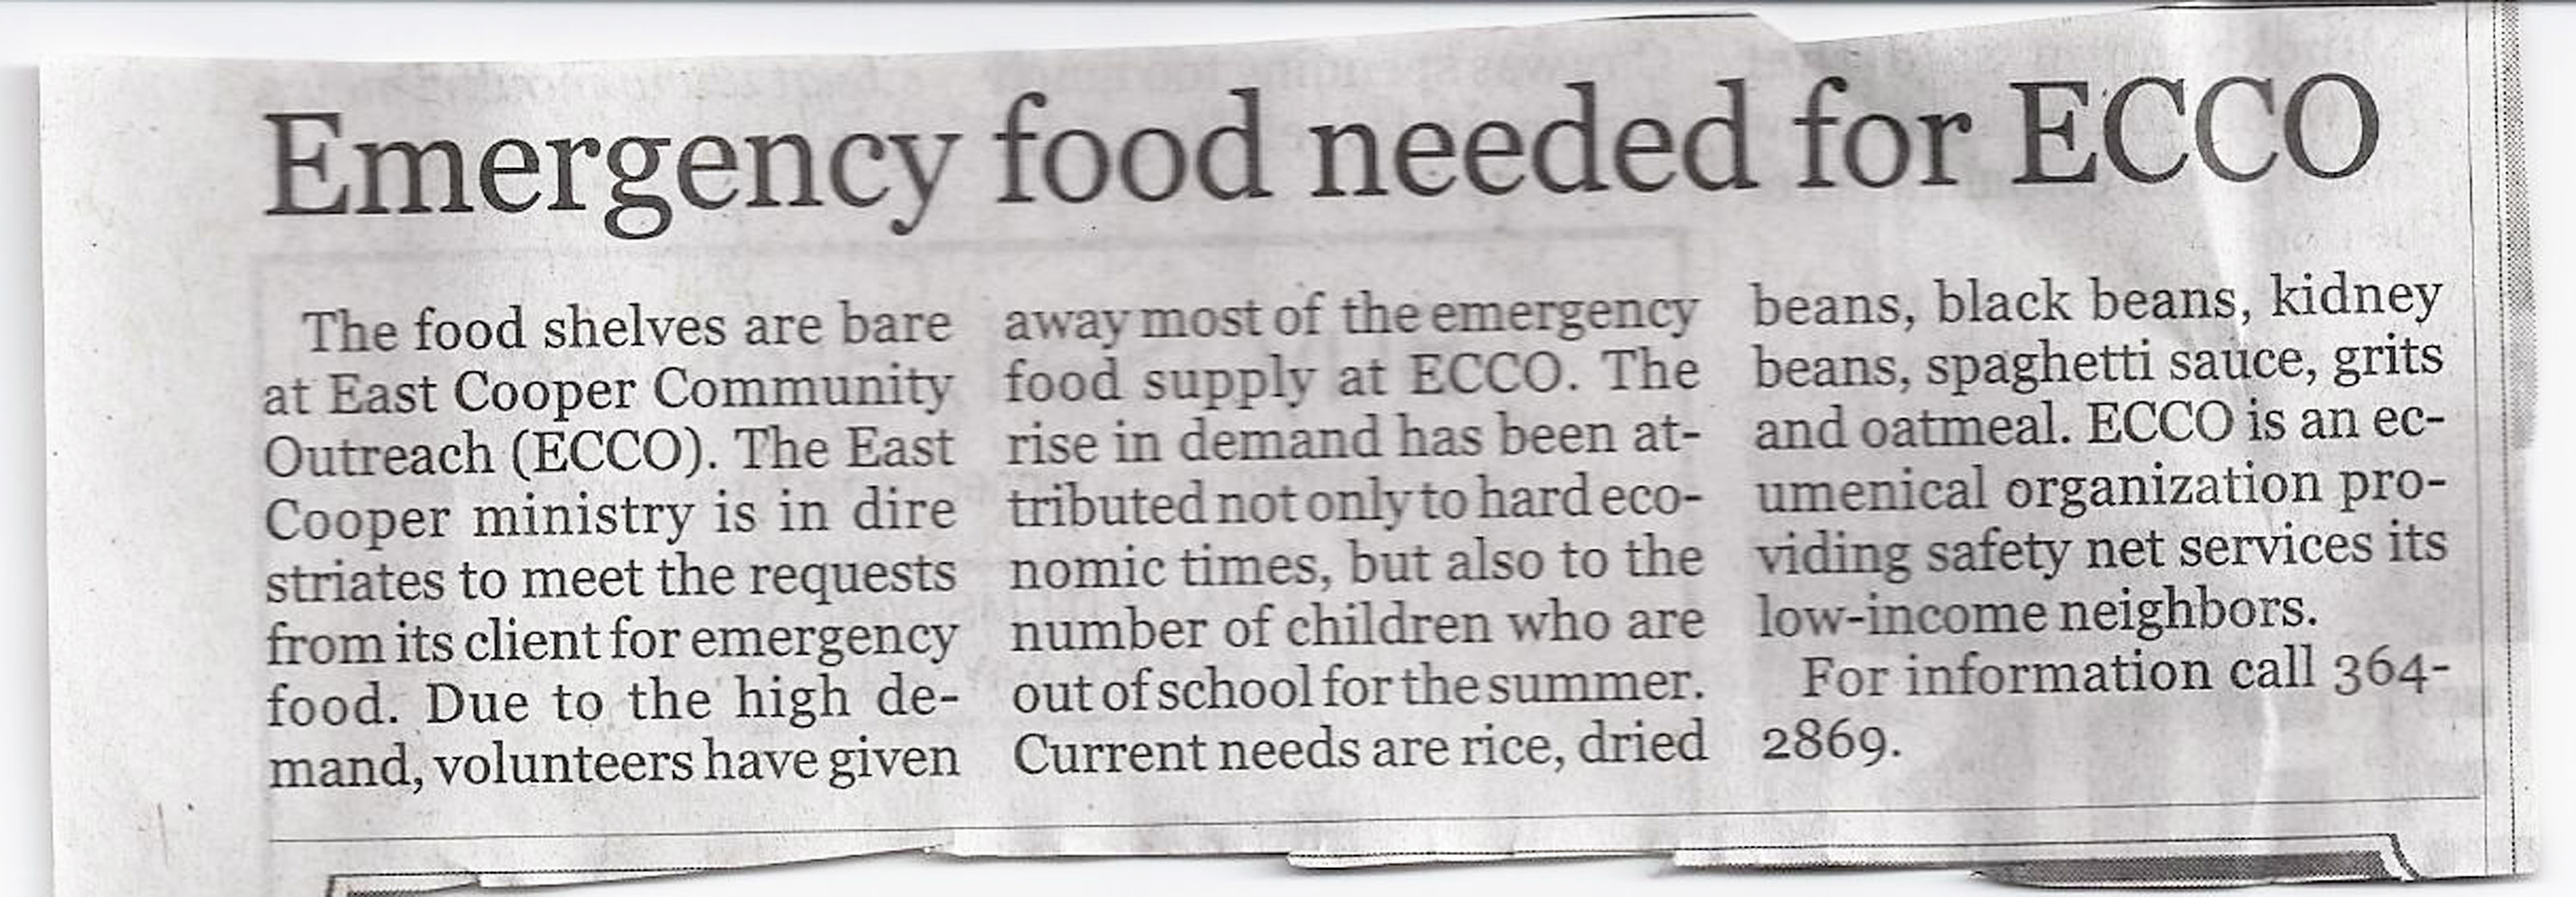 Photo of newspaper article for ECCO needs food